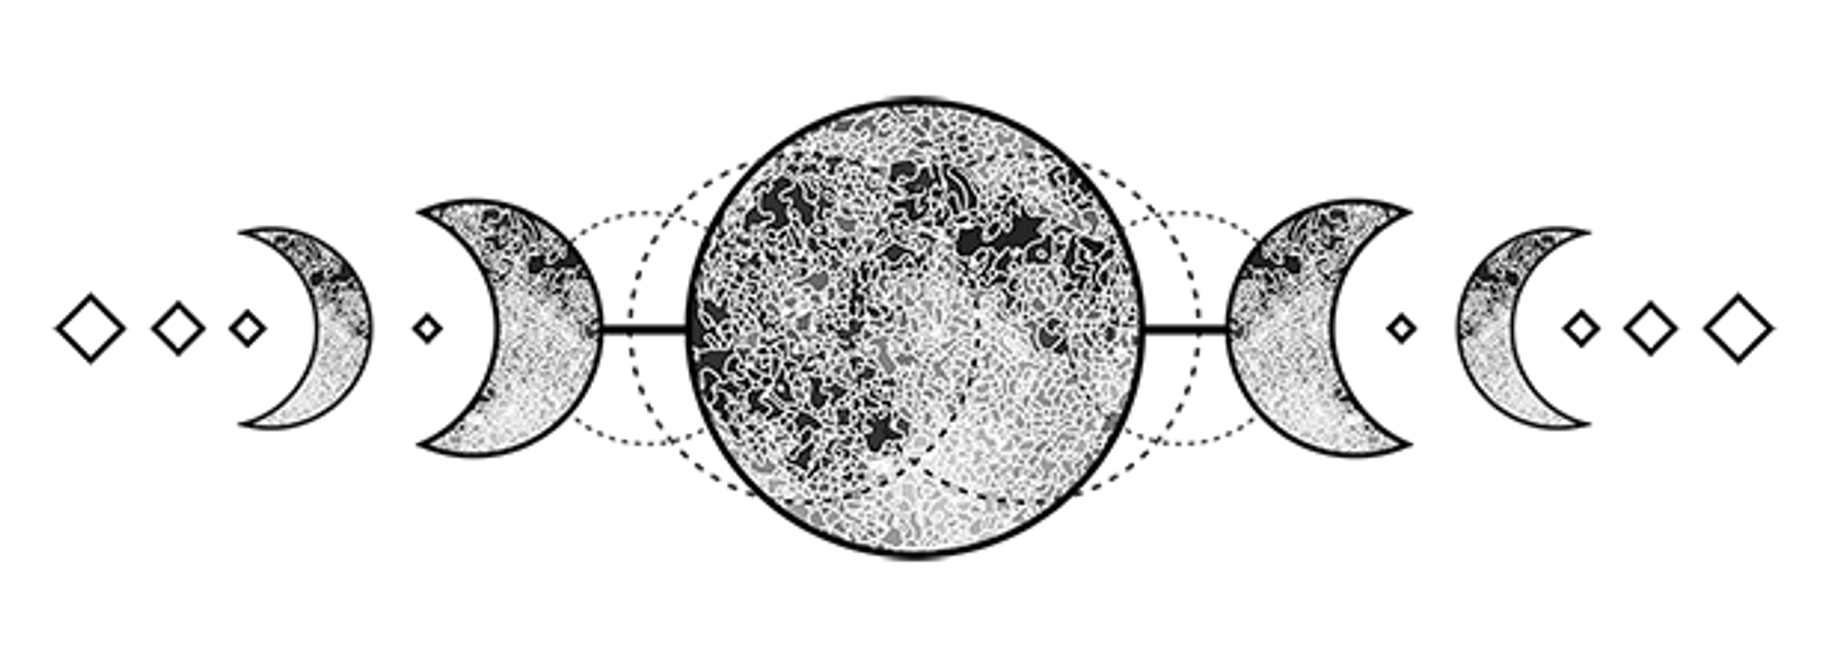 Full moon moon phases